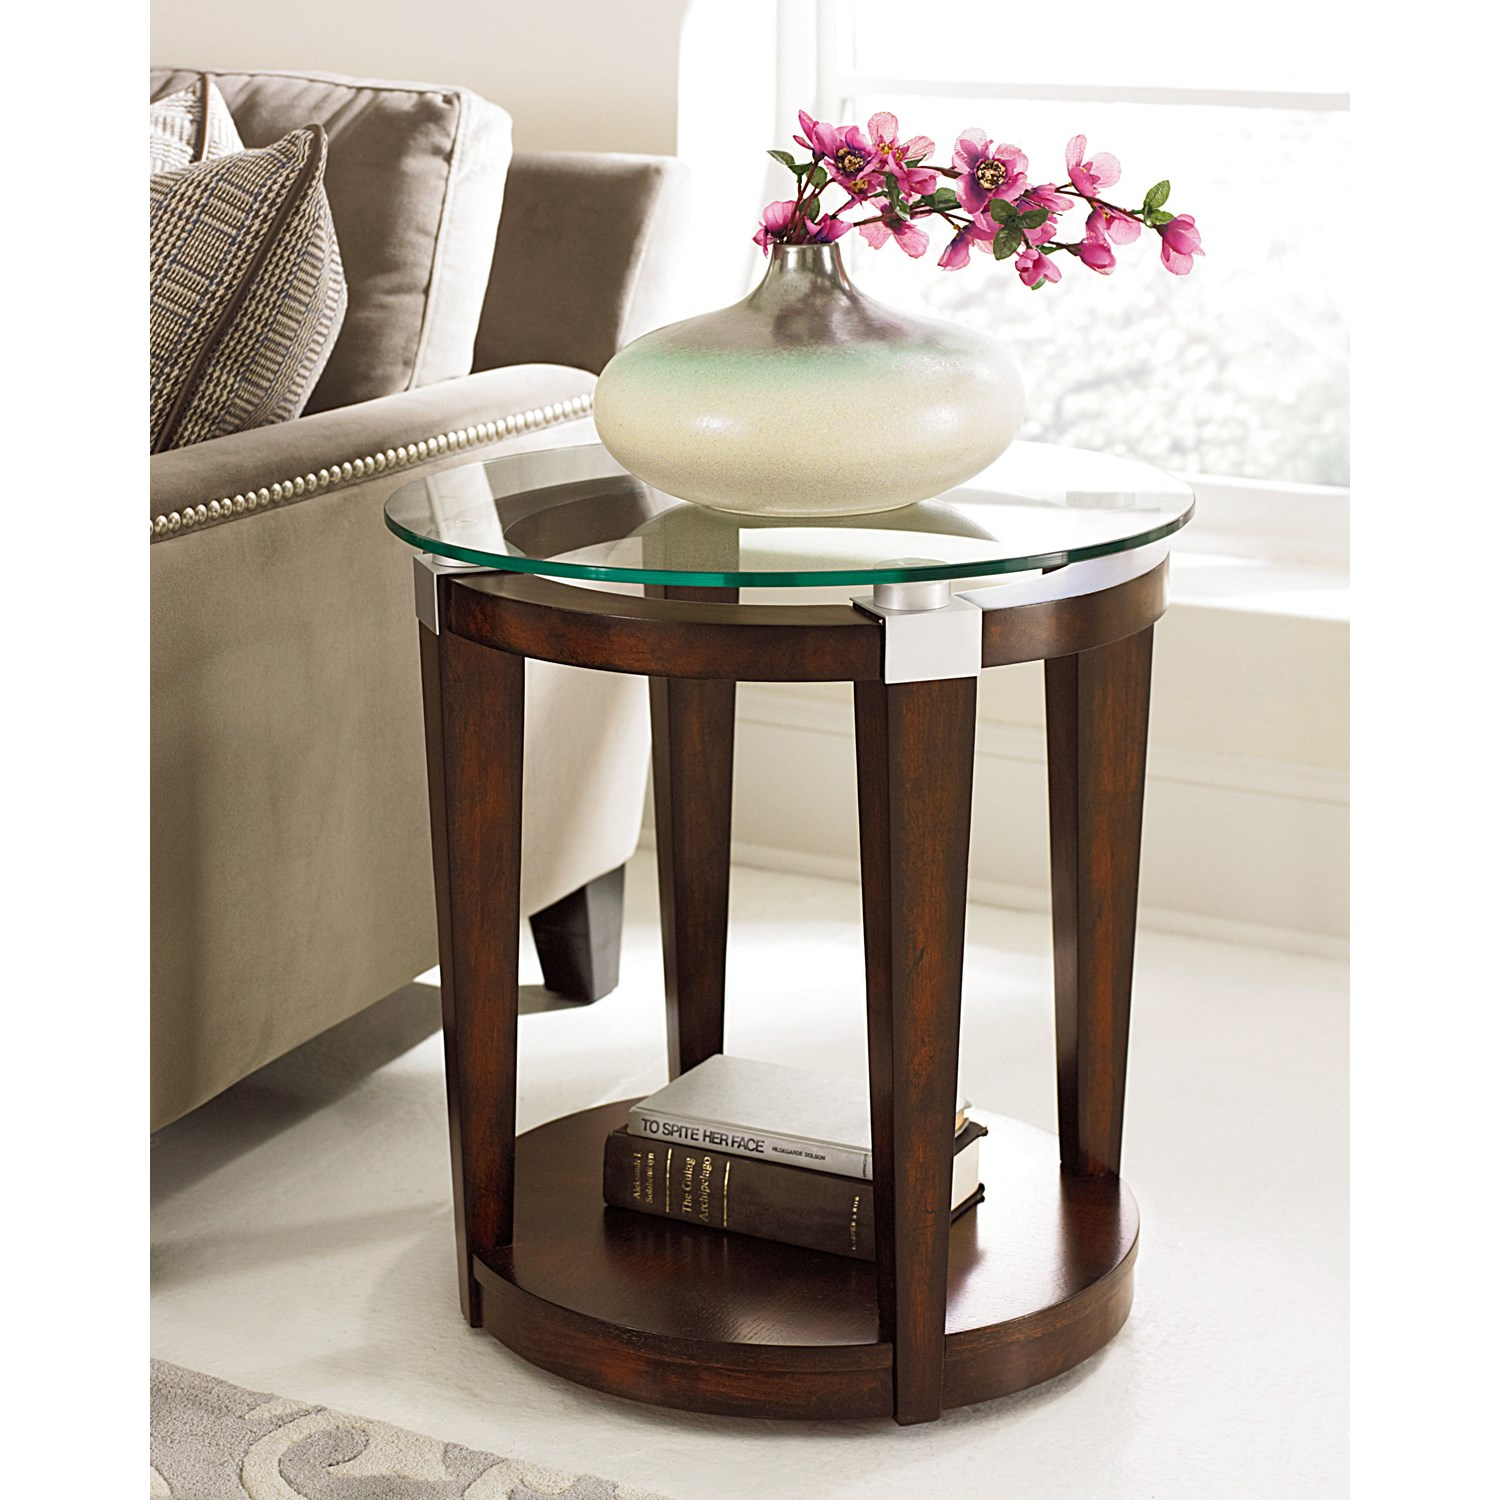 hammary furniture solitaire round rich dark brown accent table white tap expand tablecloths and runners farm style dining tables end tiffany nightstand lamps console outdoor